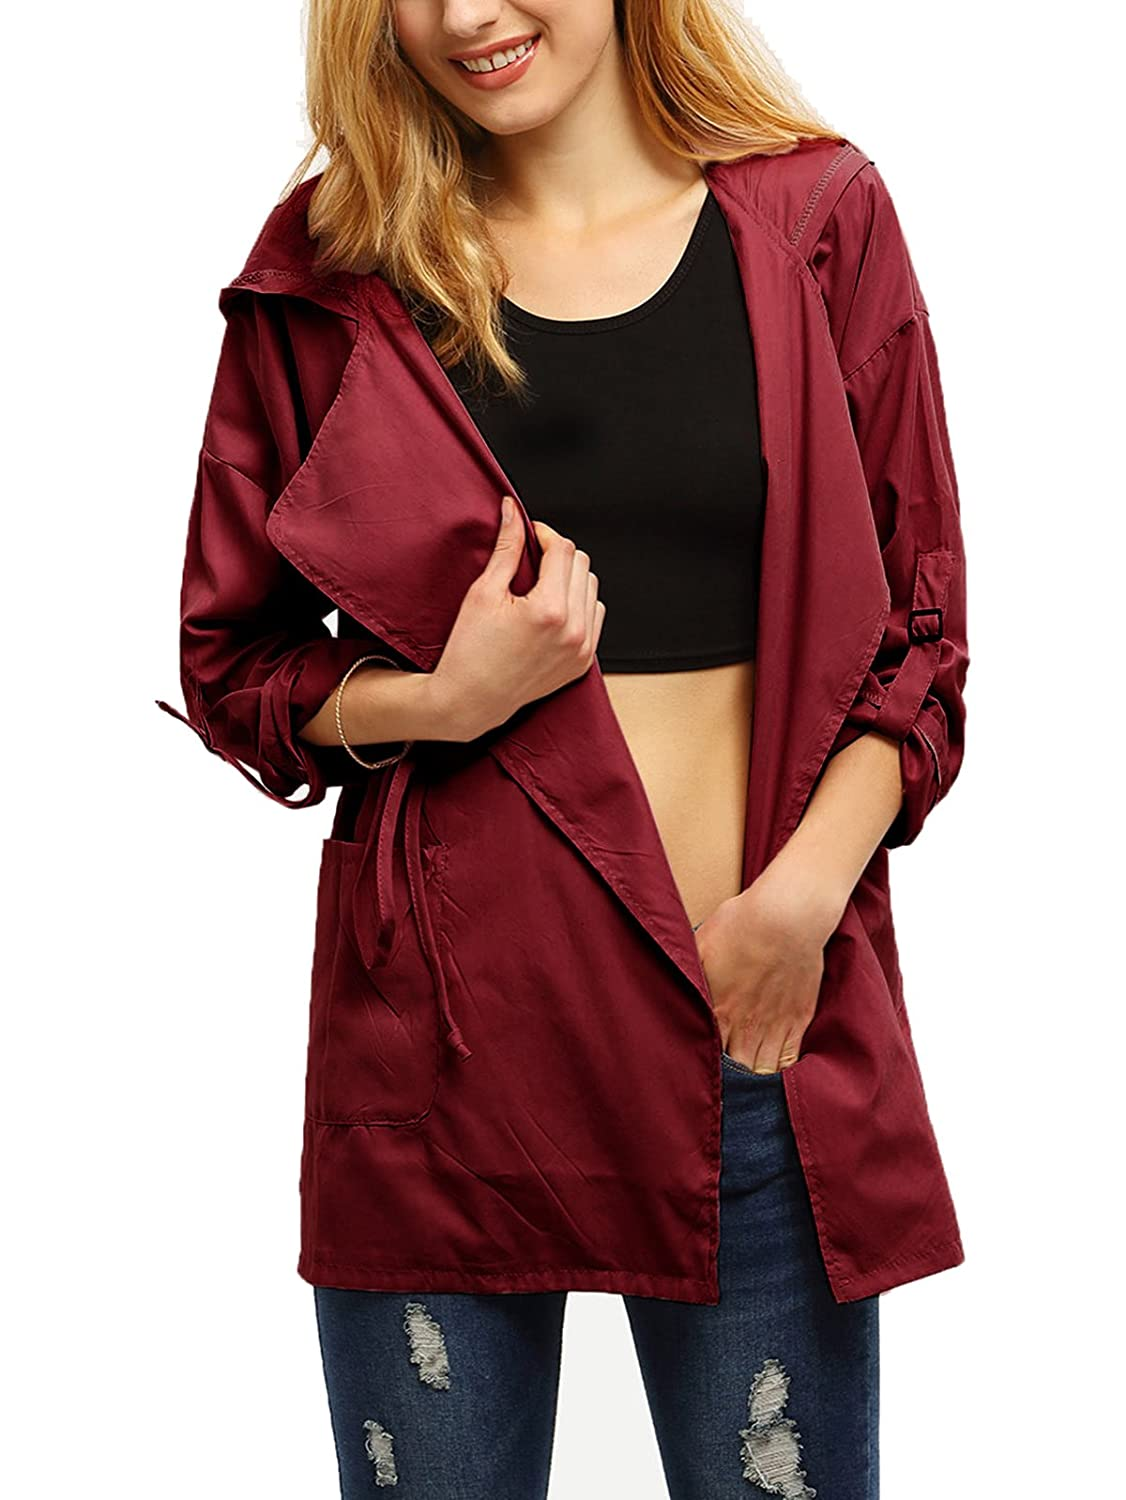 Burgundy Milumia Women's Casual Lightweight RollUp Sleeve Drawstring Hooded Coat